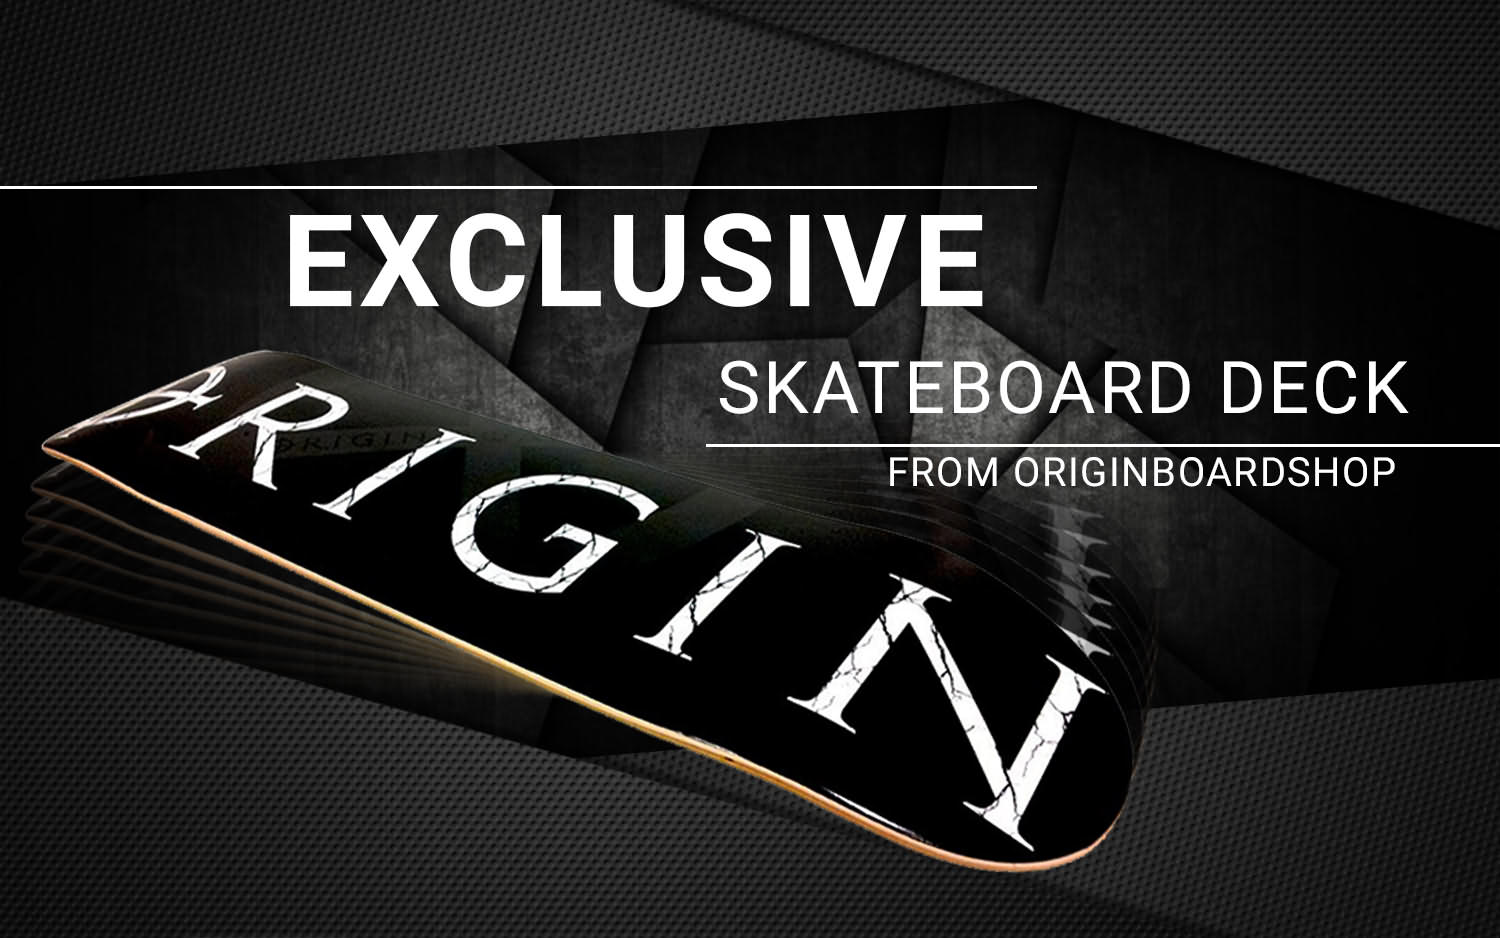 Origin Boardshop Exlusive Skateboard Deck